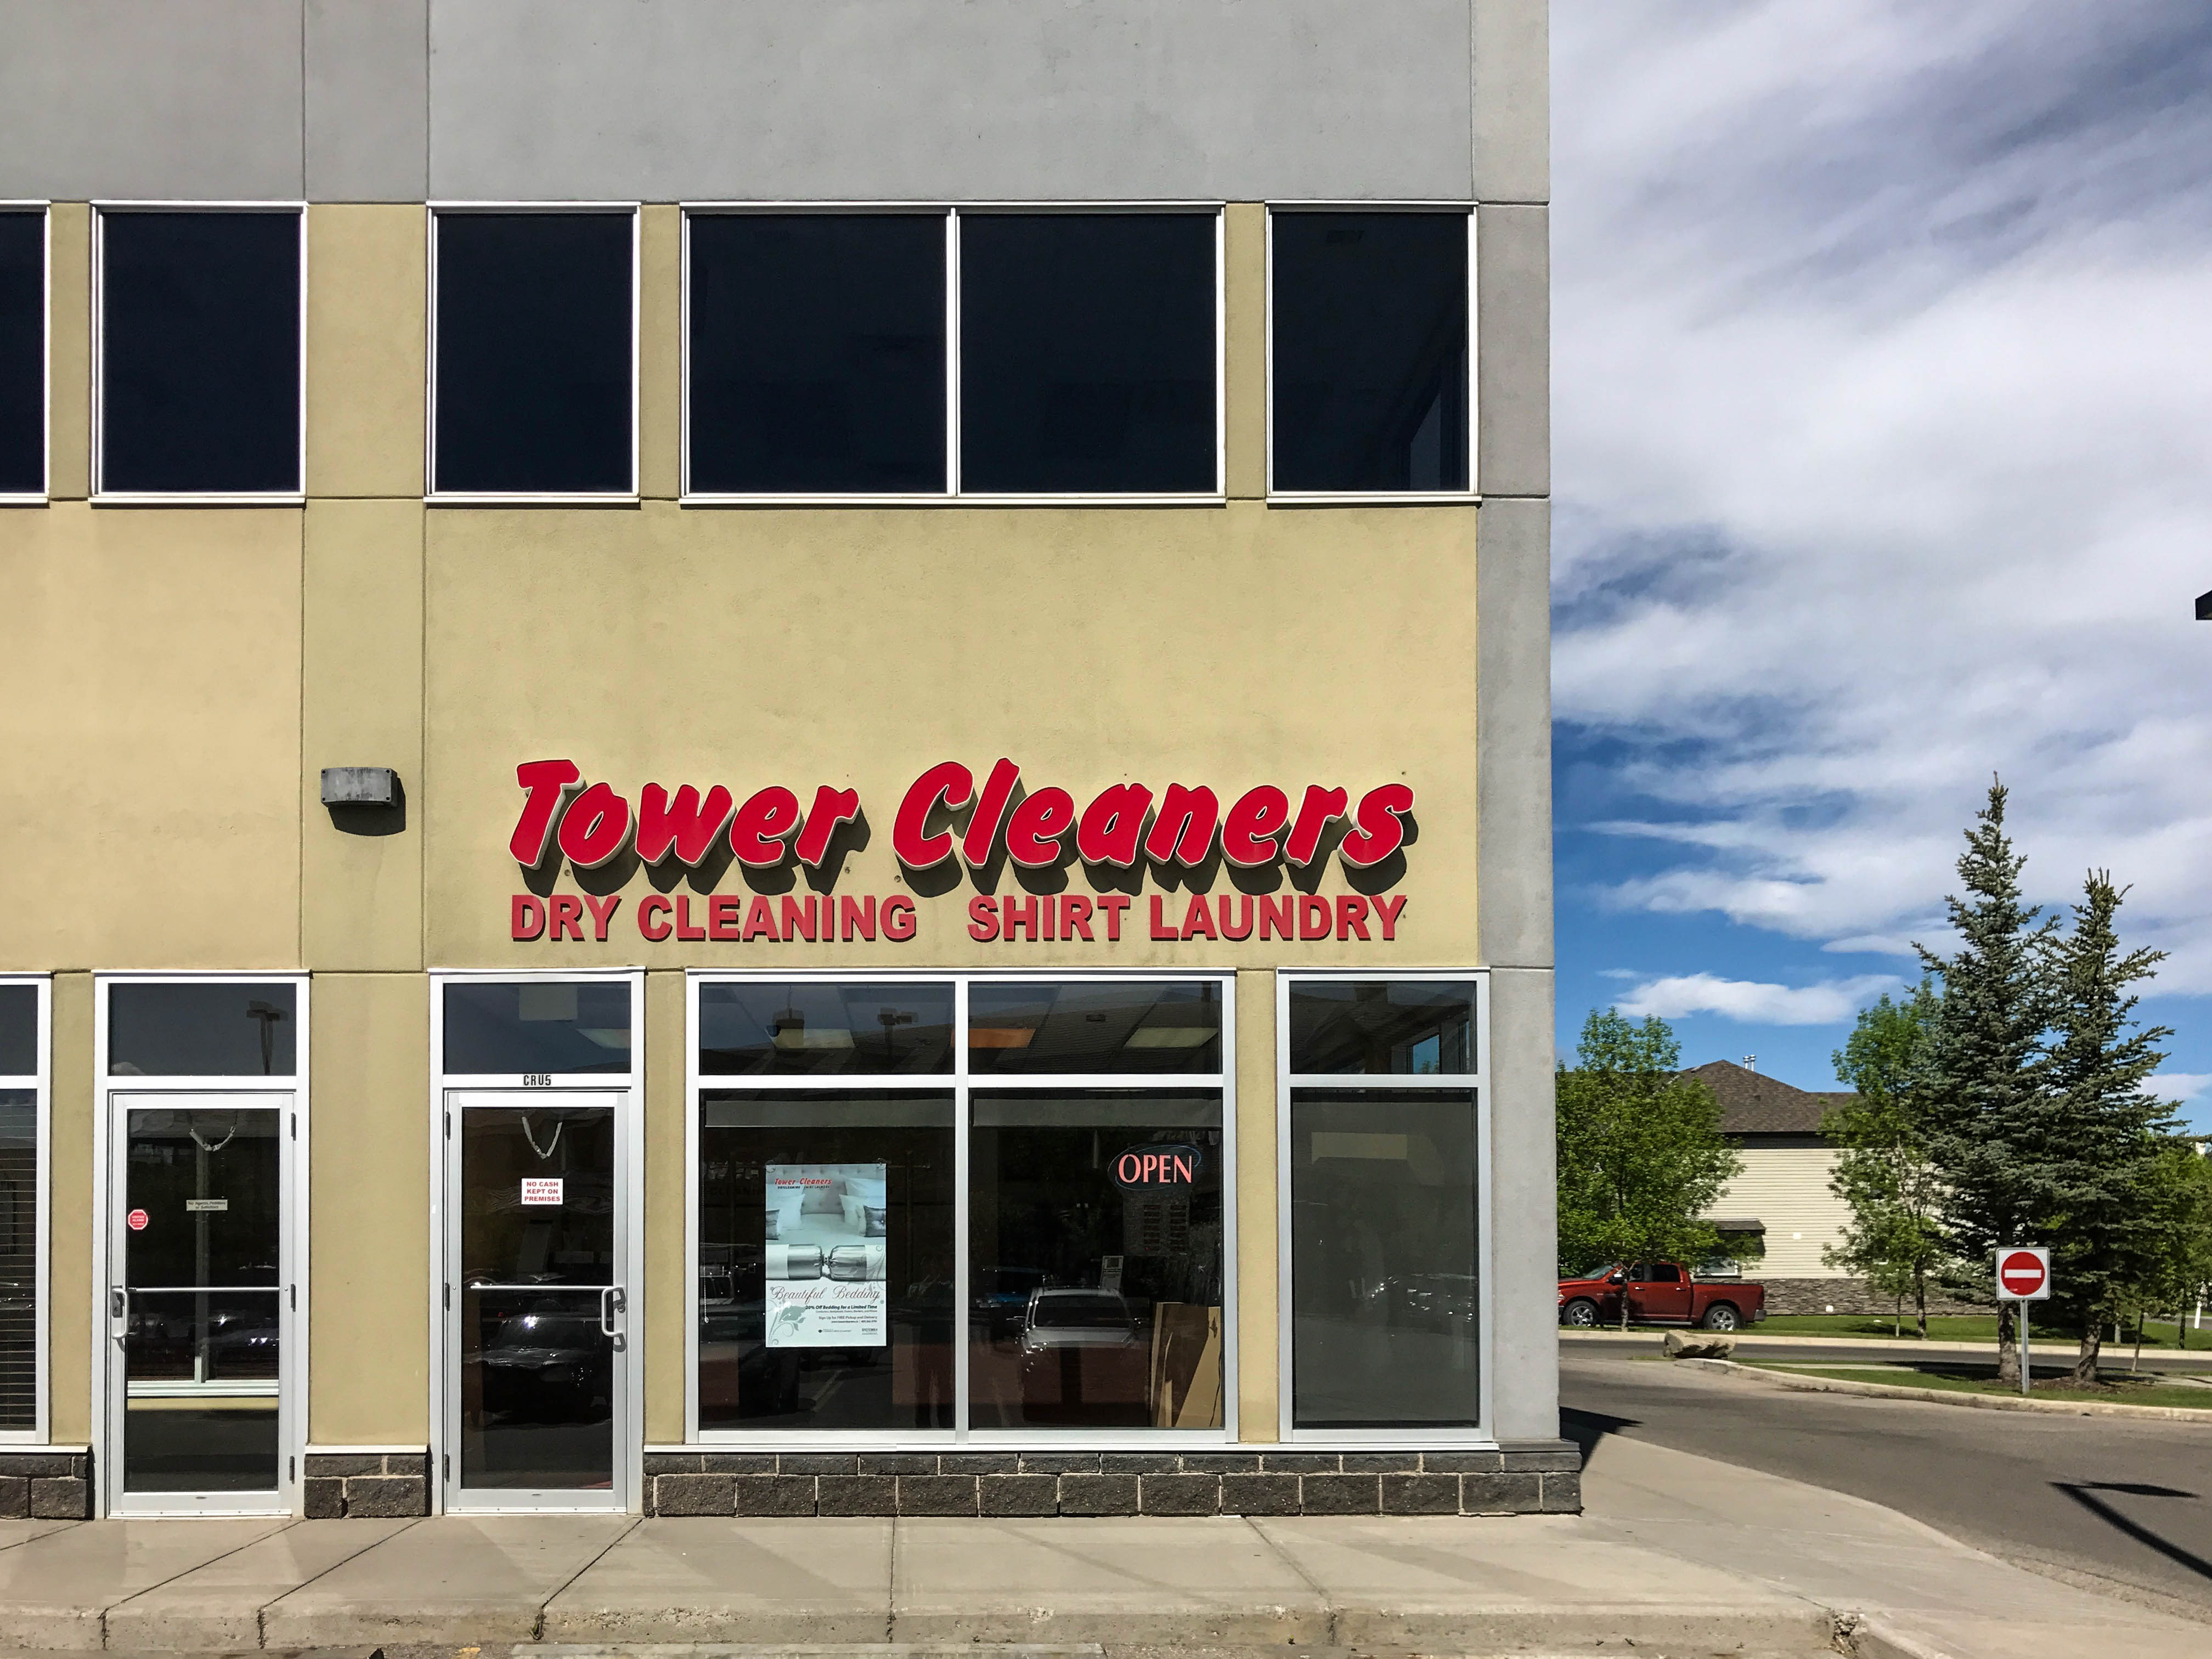 Evergreen Tower Cleaners store. #211, 2250 - 162 Ave SW, Calgary, Alberta, (403) 201-0272